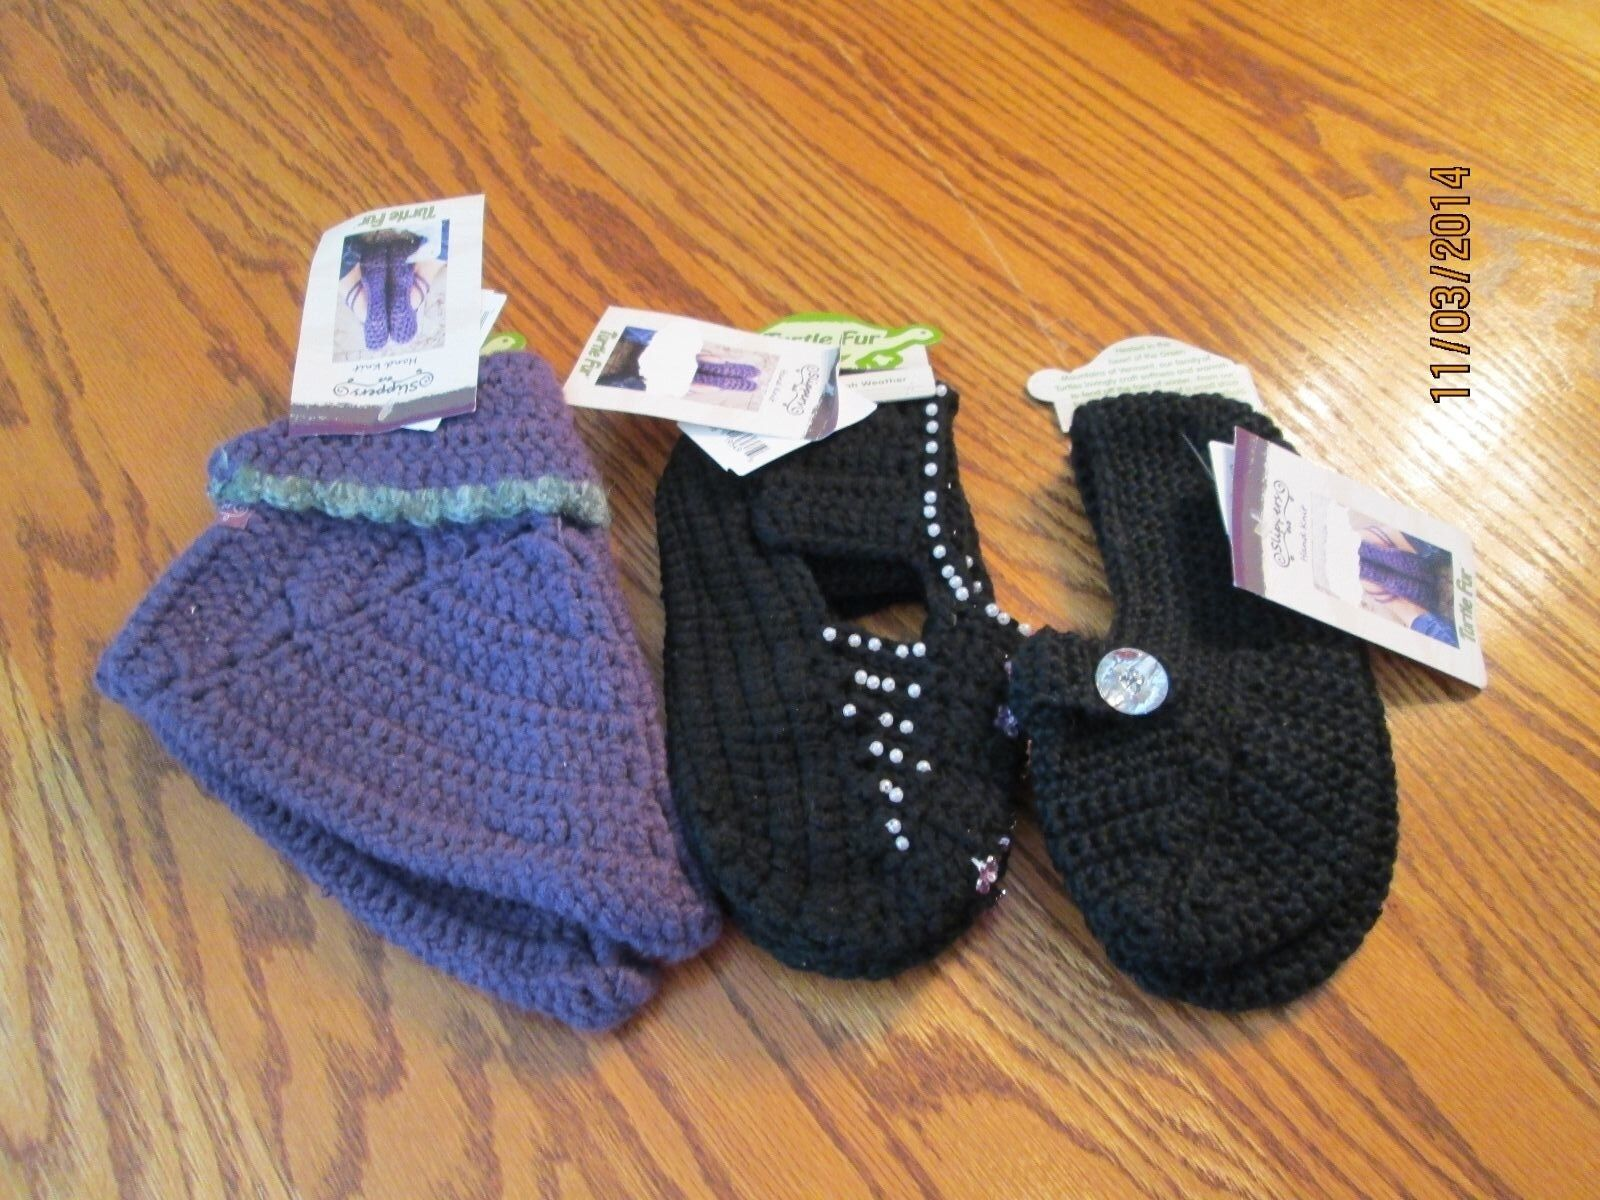 TURTLE FUR WOMEN'S HAND KNIT SLIPPERS VARIOUS COLORS SIZES NWT